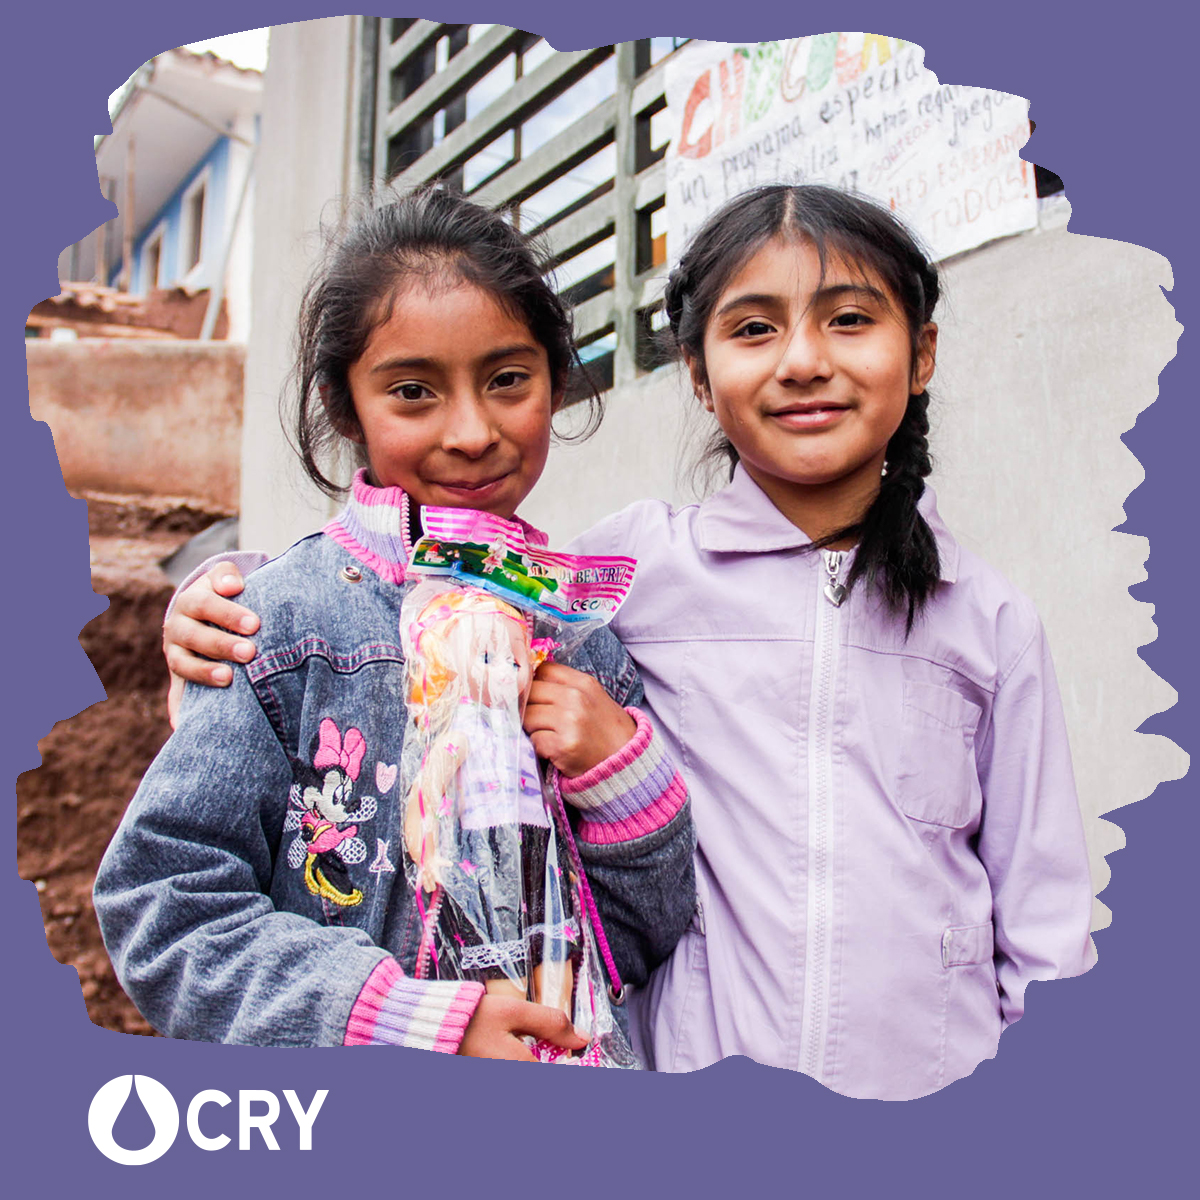 How is COVID-19 affecting vulnerable children, how is CRY helping ... and how can YOU help? 💜🙏  Check out our latest blog post https://t.co/g5Cu9OwWBC  #covid19 #vulnerablechildren #coronavirussupport https://t.co/g1fMkUB2MA